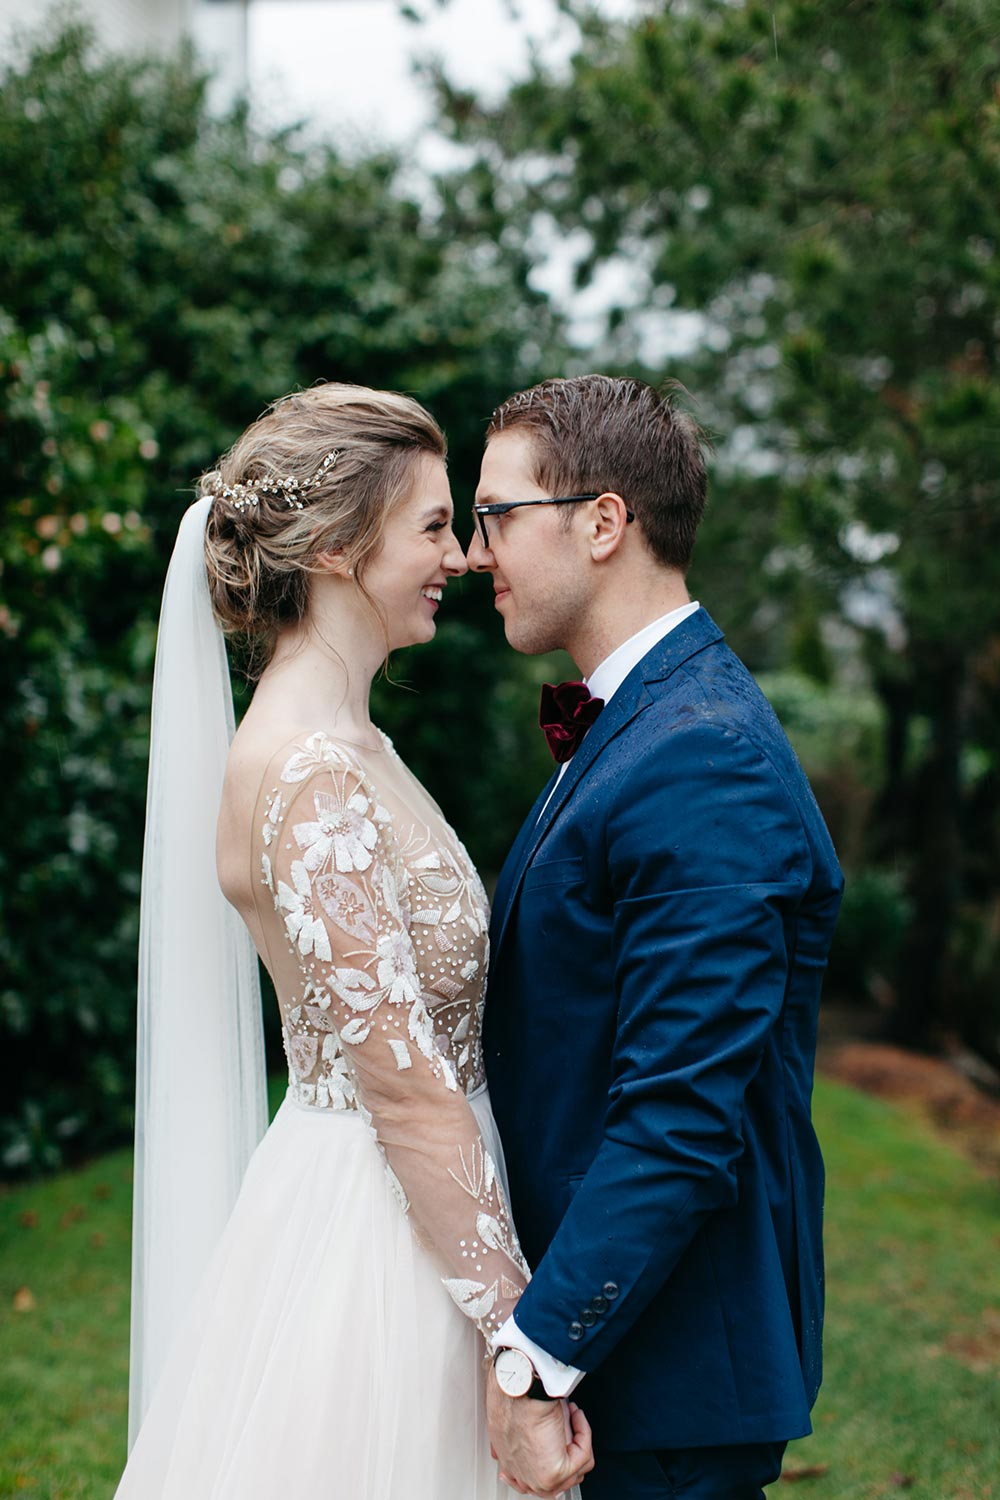 Hayley paige long sleeve wedding dress and navy groom suit